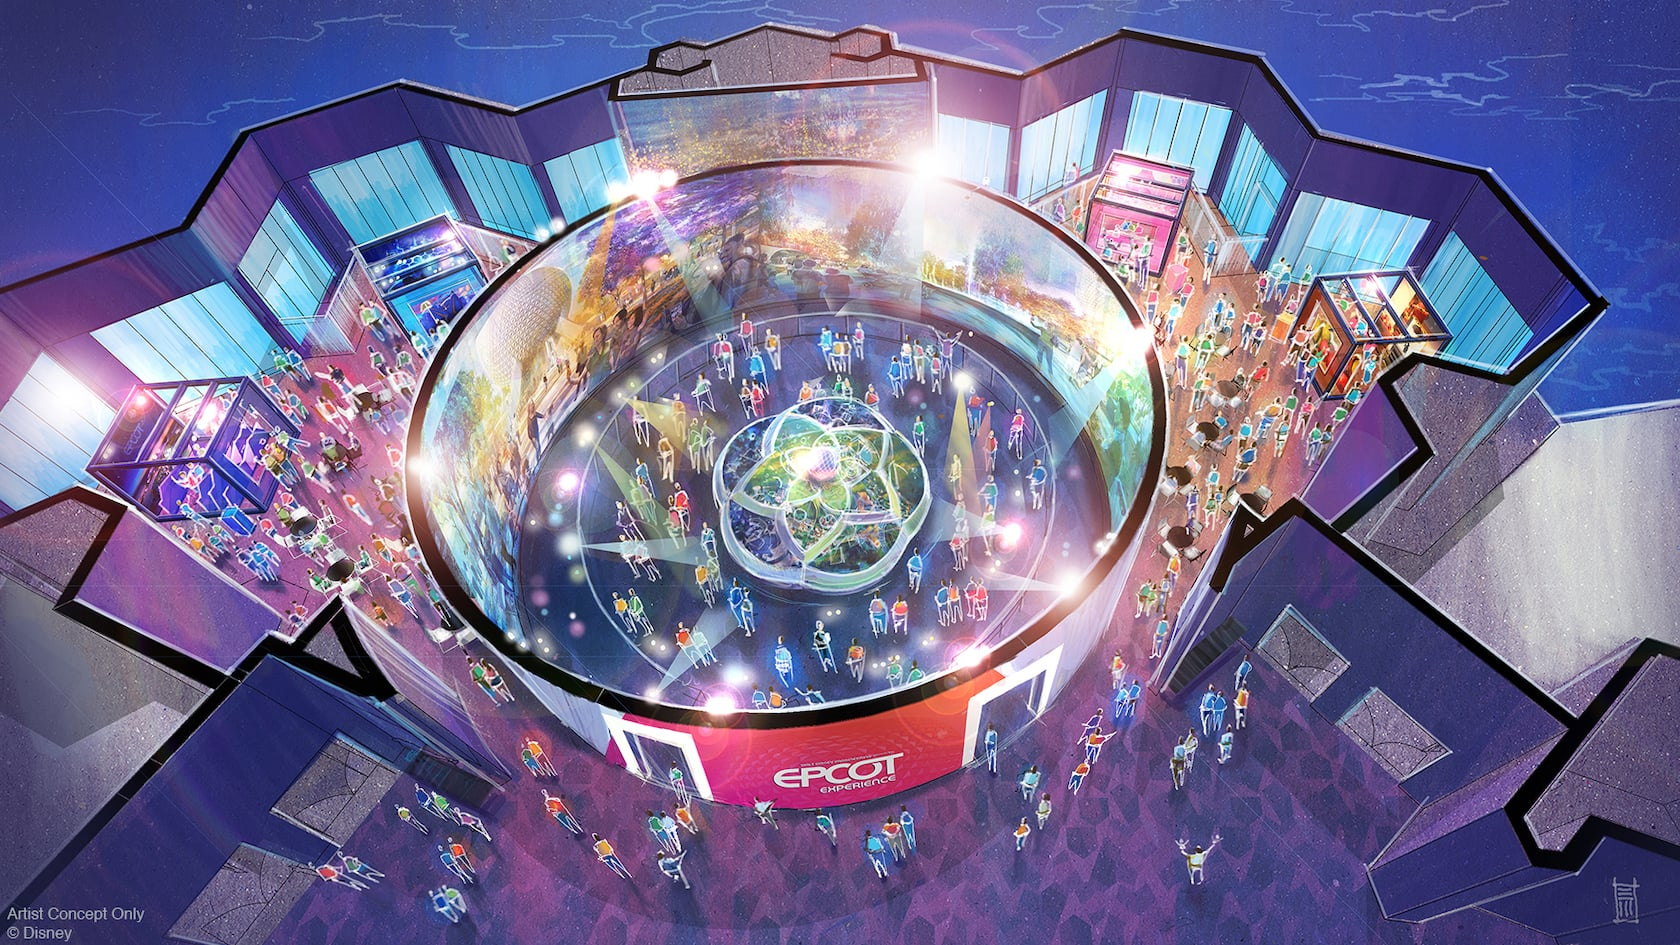 An artists rendering of the exhibits on display at Walt Disney Imagineering Presents the Epcot Experience